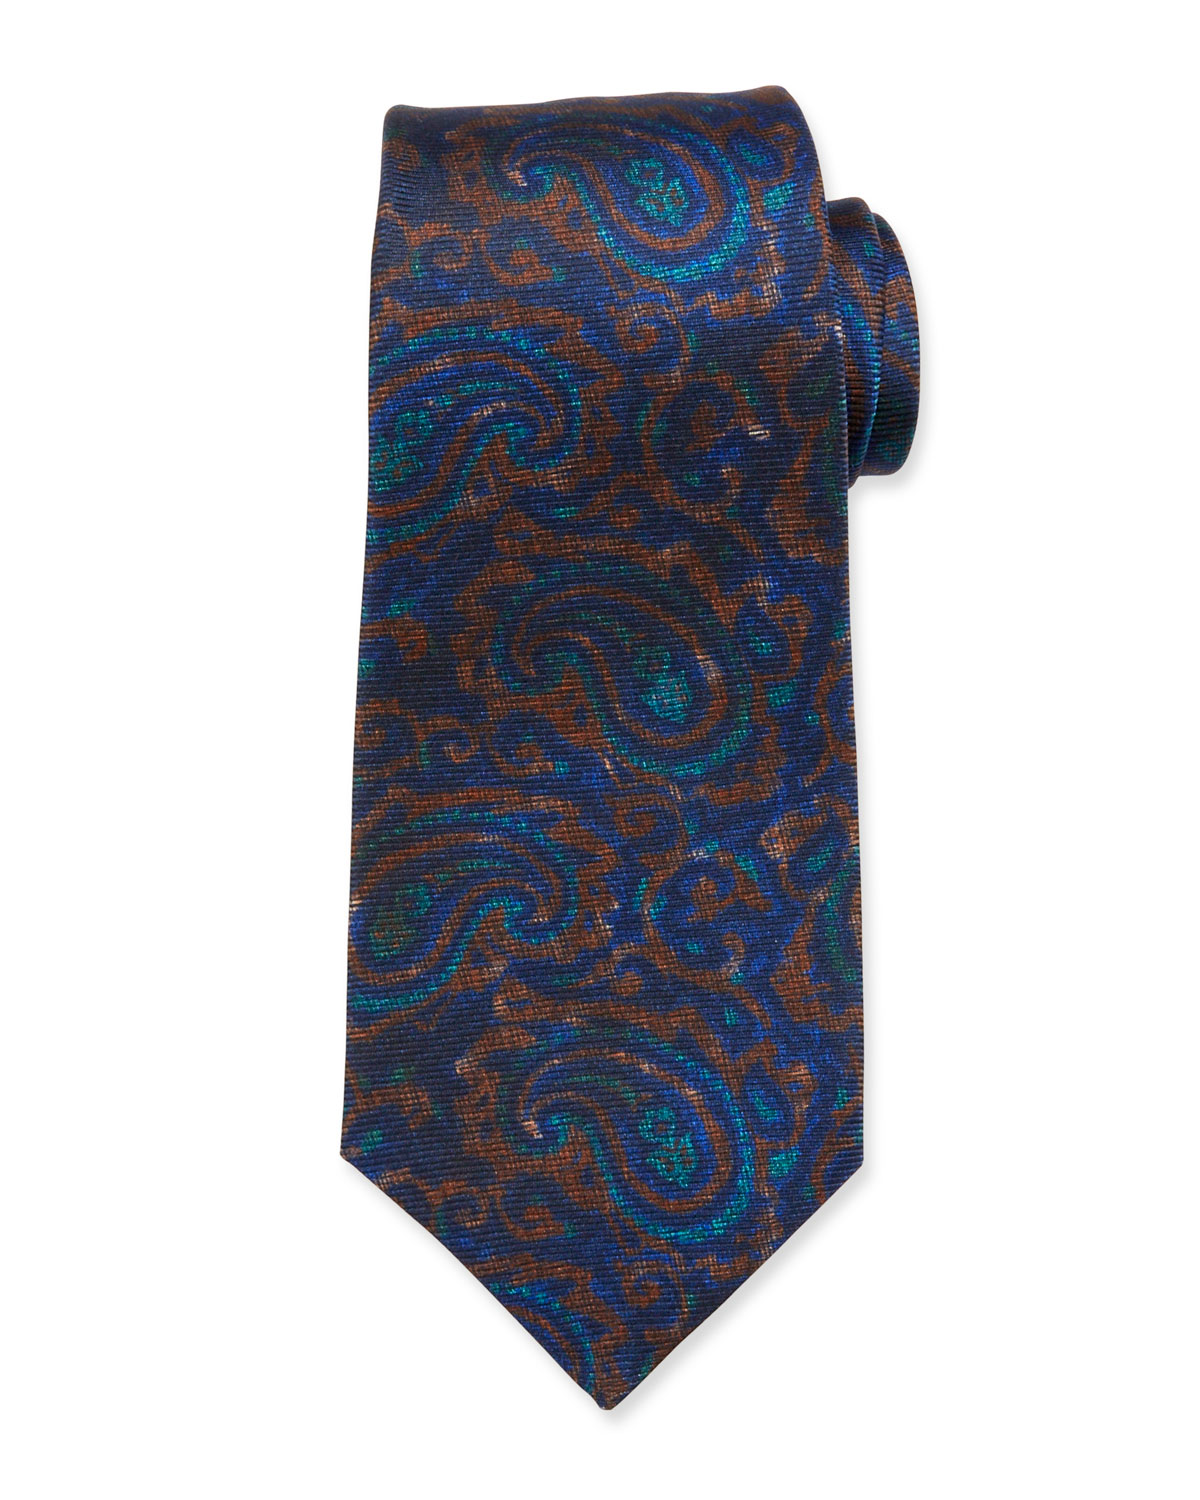 Kiton Ties ANTIQUE PAISLEY SILK TIE